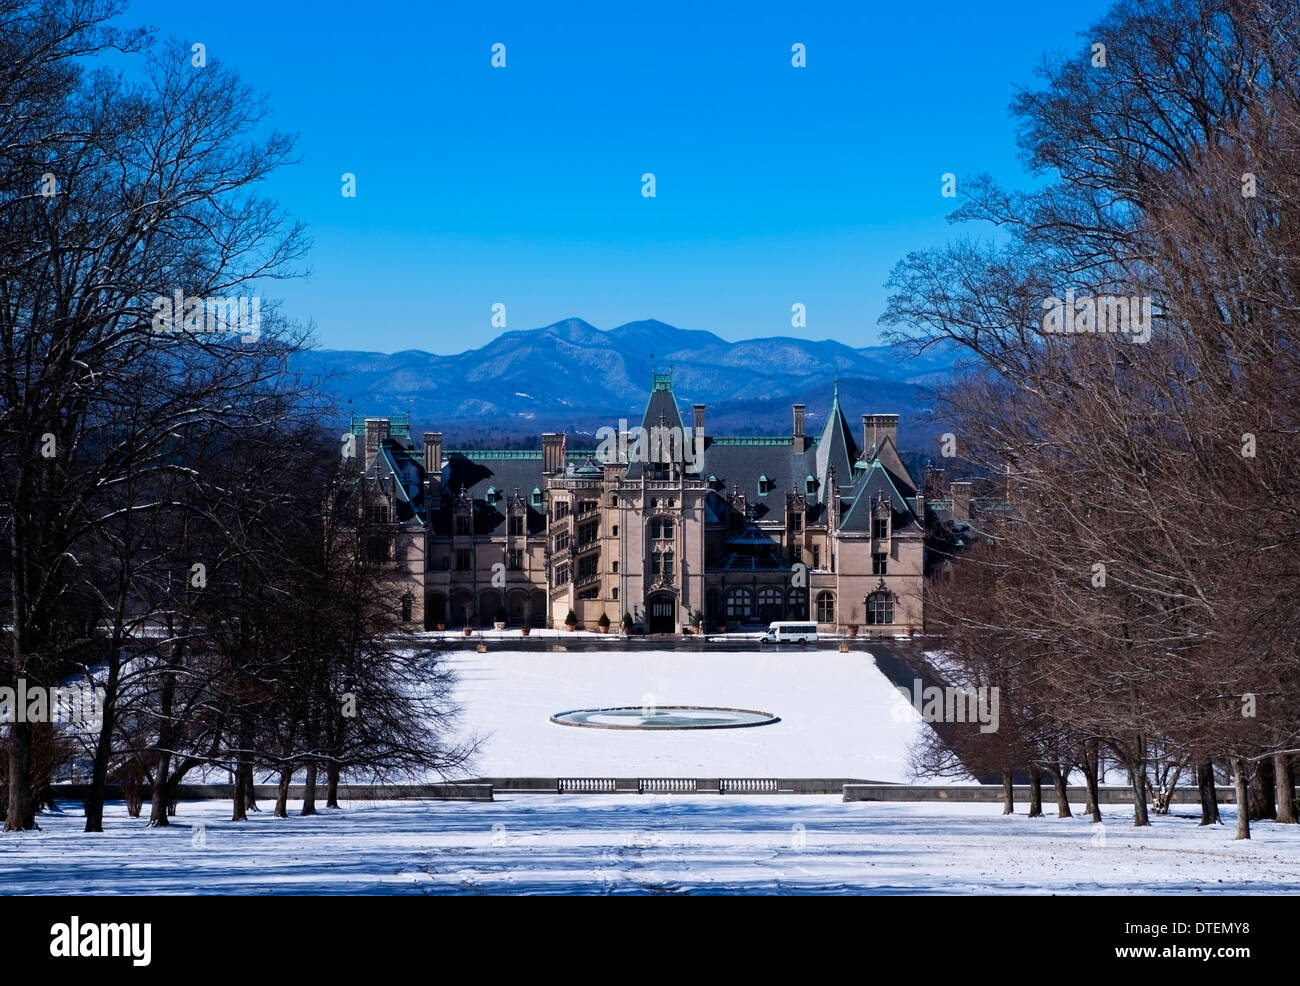 The Biltmore Mansion, front View, with snow on the ground and mountains in the background, Asheville North Carolina - Stock Image